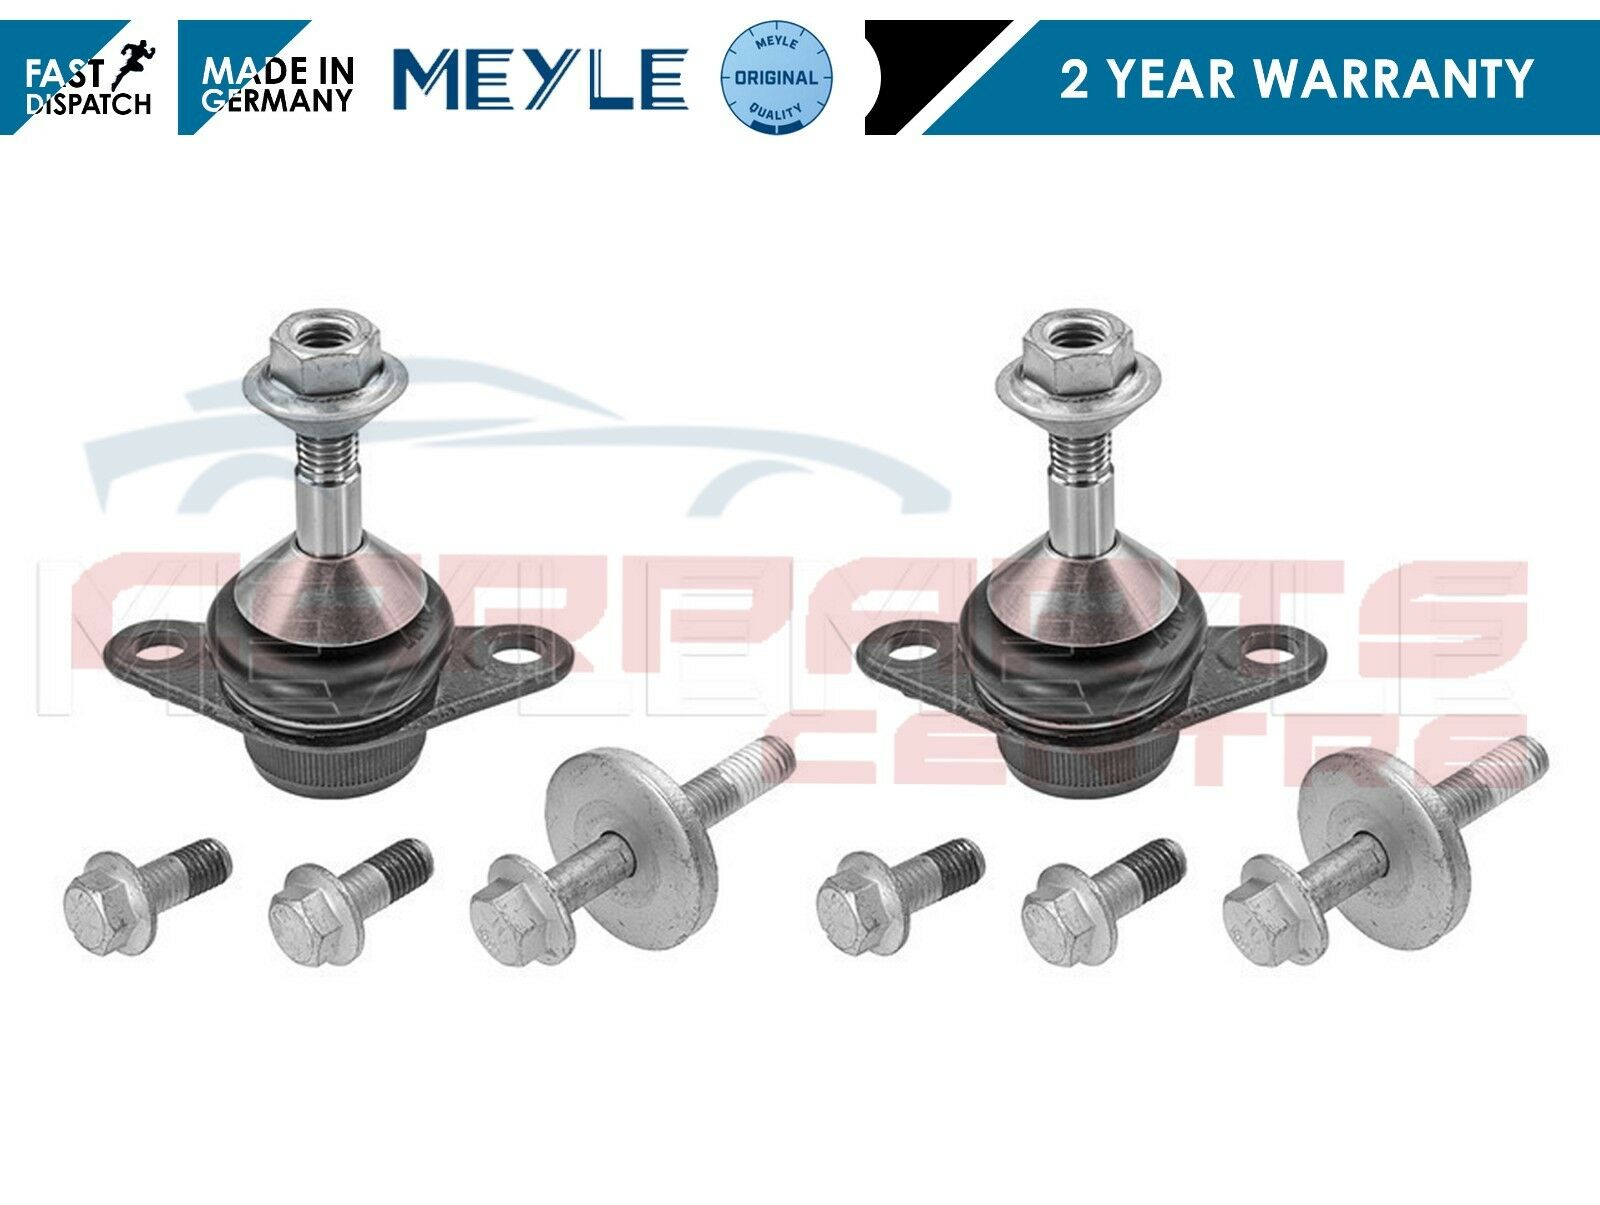 03-13 Front Suspension Ball Joints x2 Meyle HD for Volvo XC70 XC90 S60